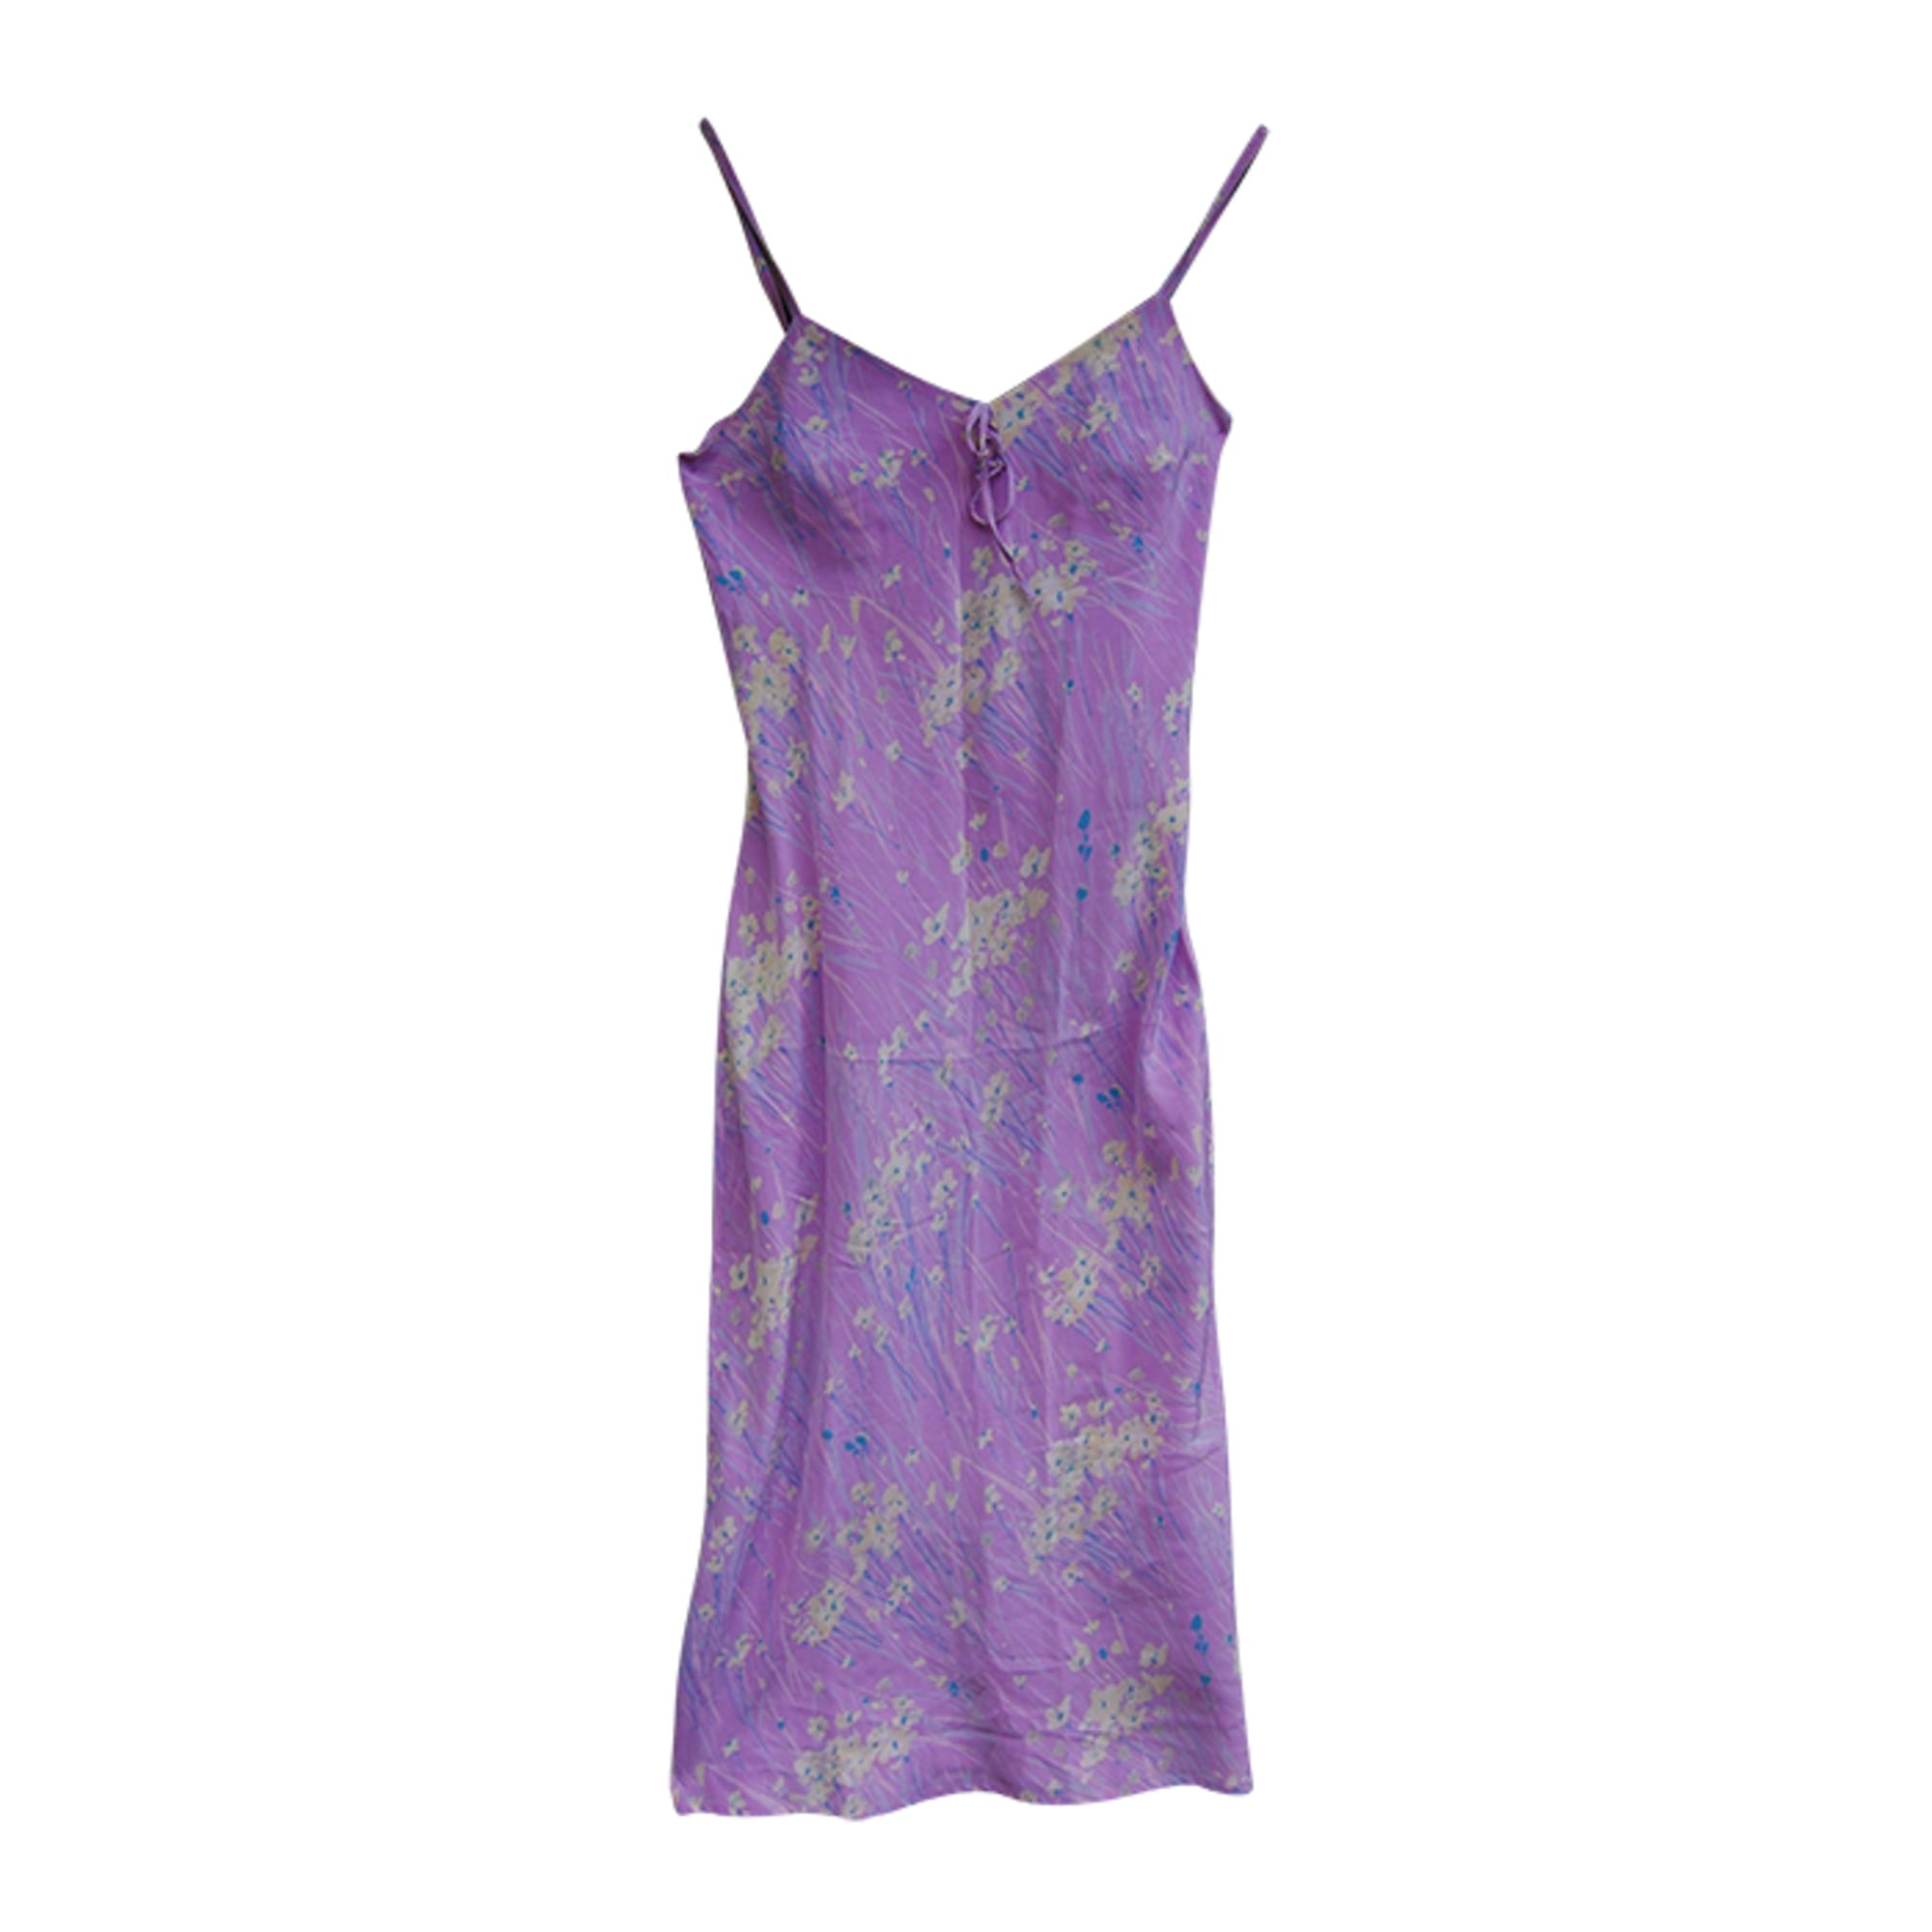 Robe longue PAUL & JOE Violet, mauve, lavande